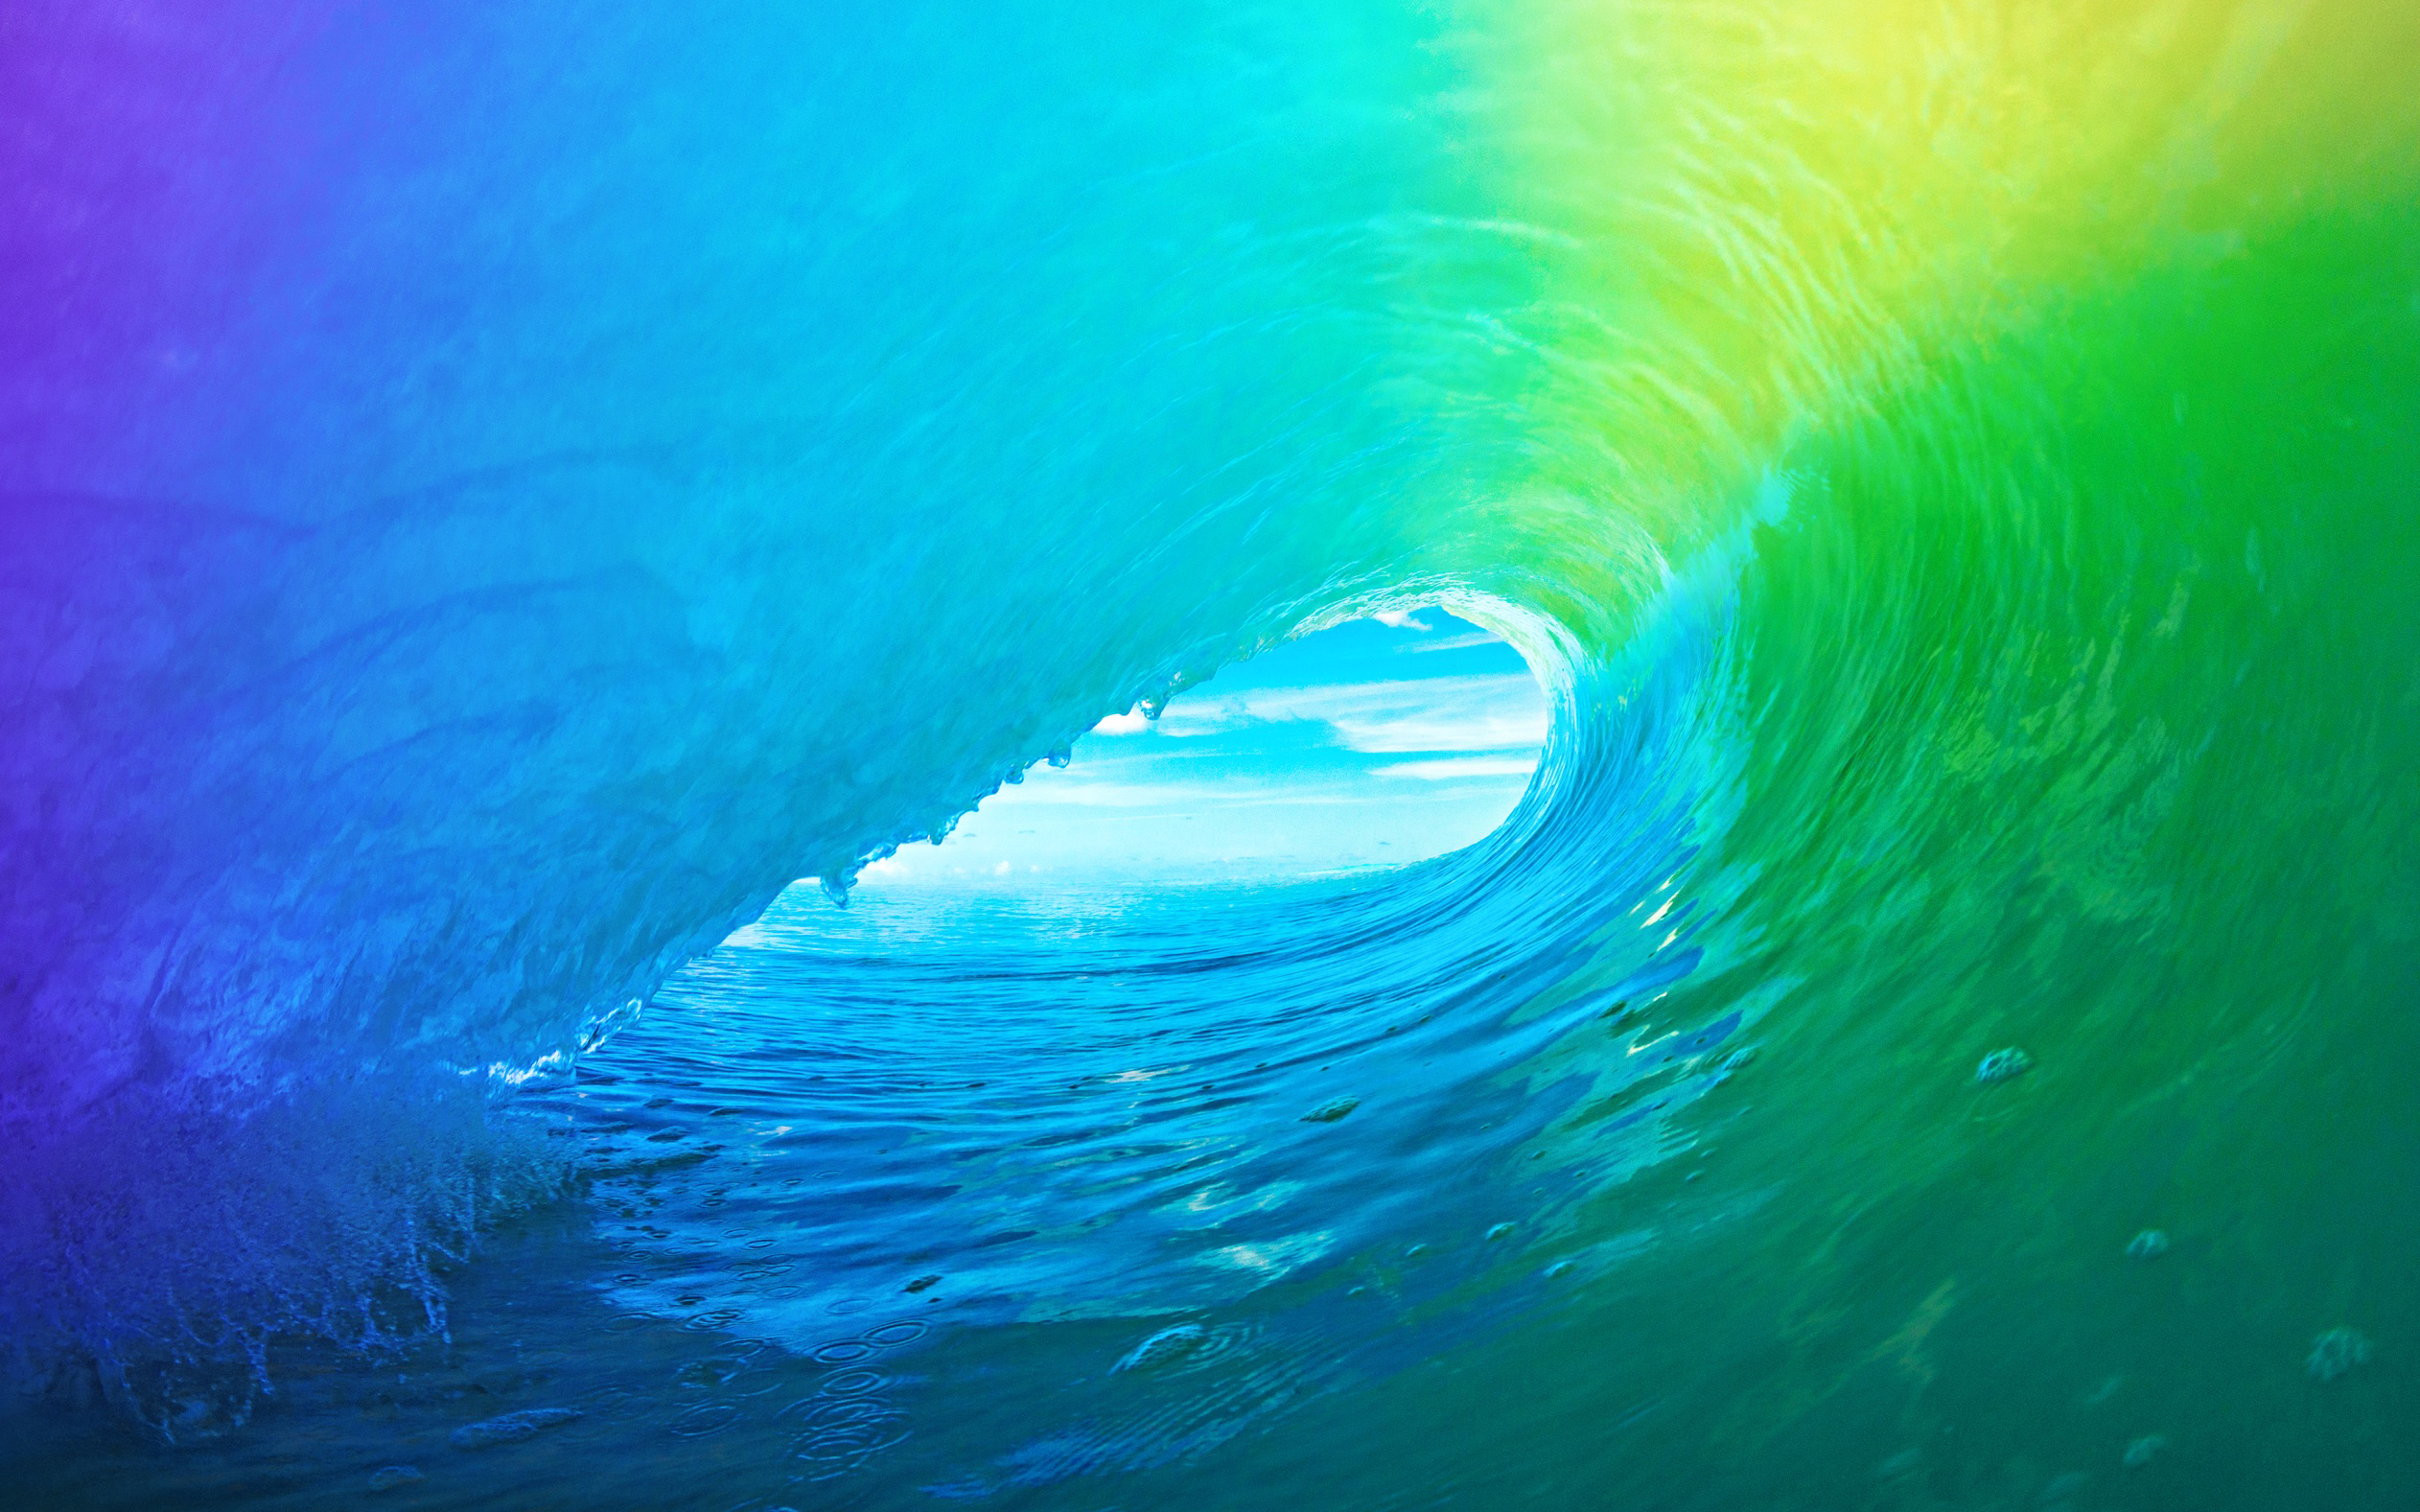 Iphone Wallpaper: Download The Colored Wave Default IOS 9 Wallpaper